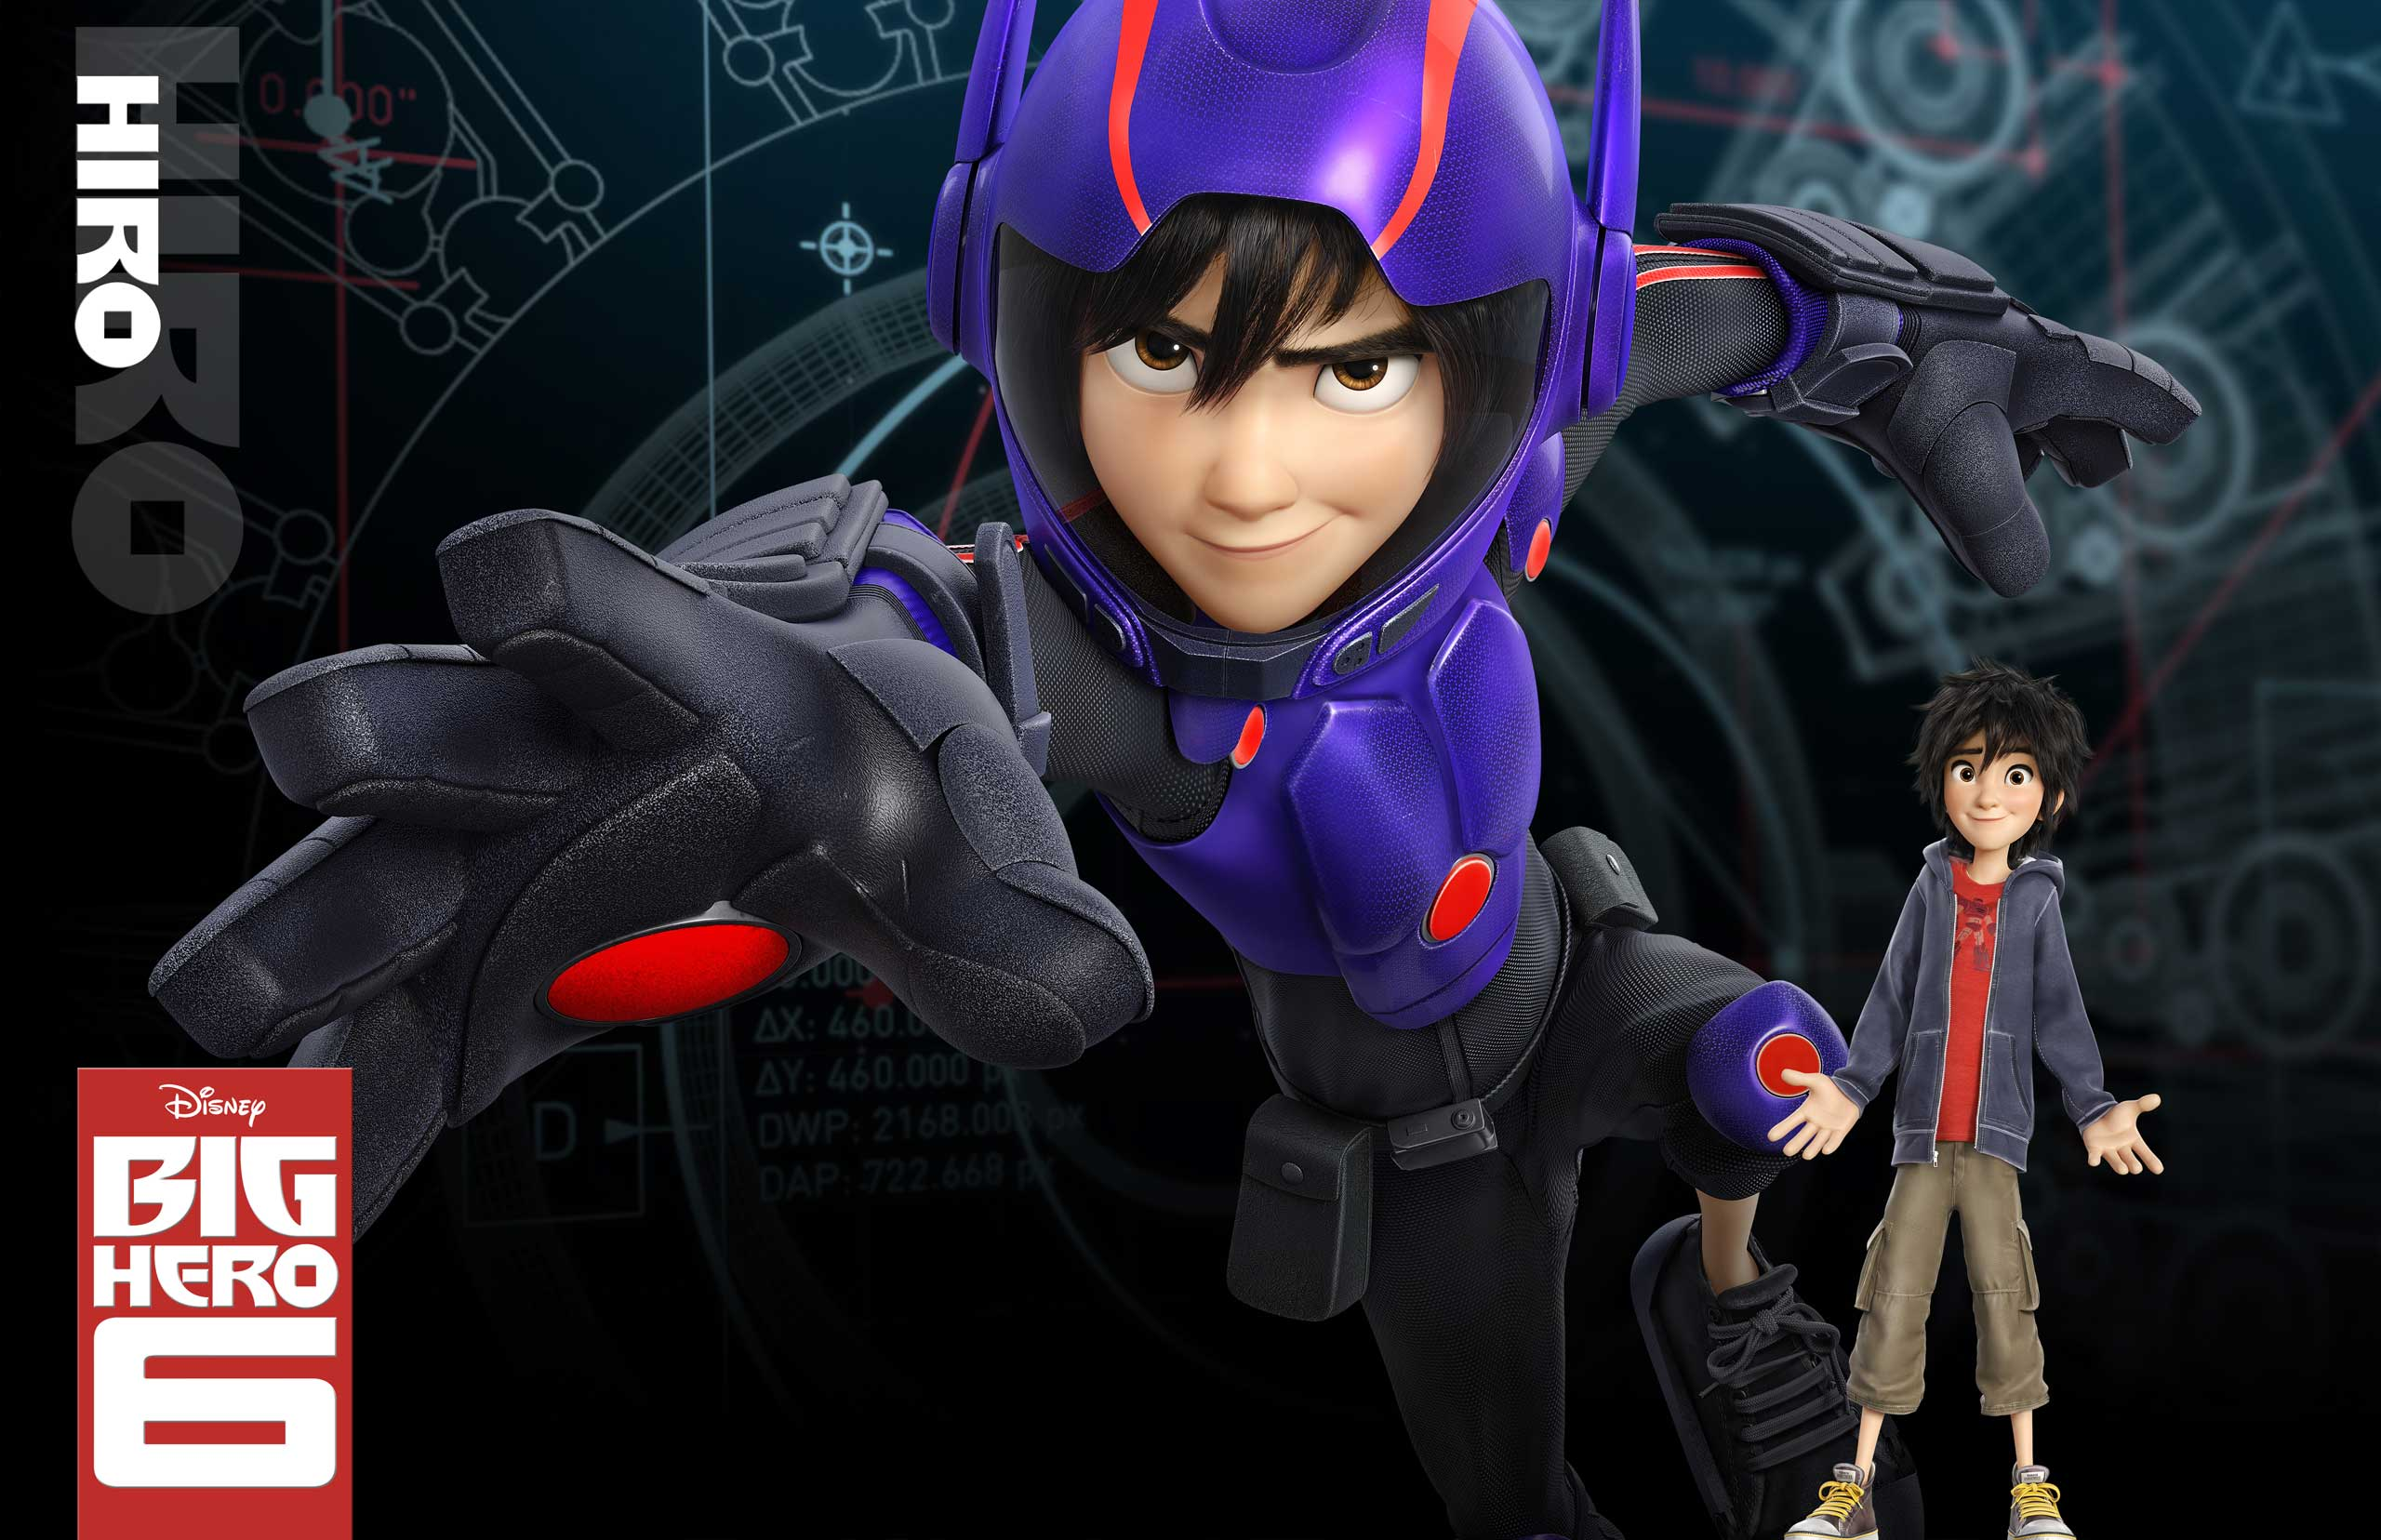 Hiro Hamada, voiced by Ryan Potter, is 14-year-old robotics prodigy and de facto leader of the Big Hero 6 who gives Baymax his robotic crime-fighting upgrades.